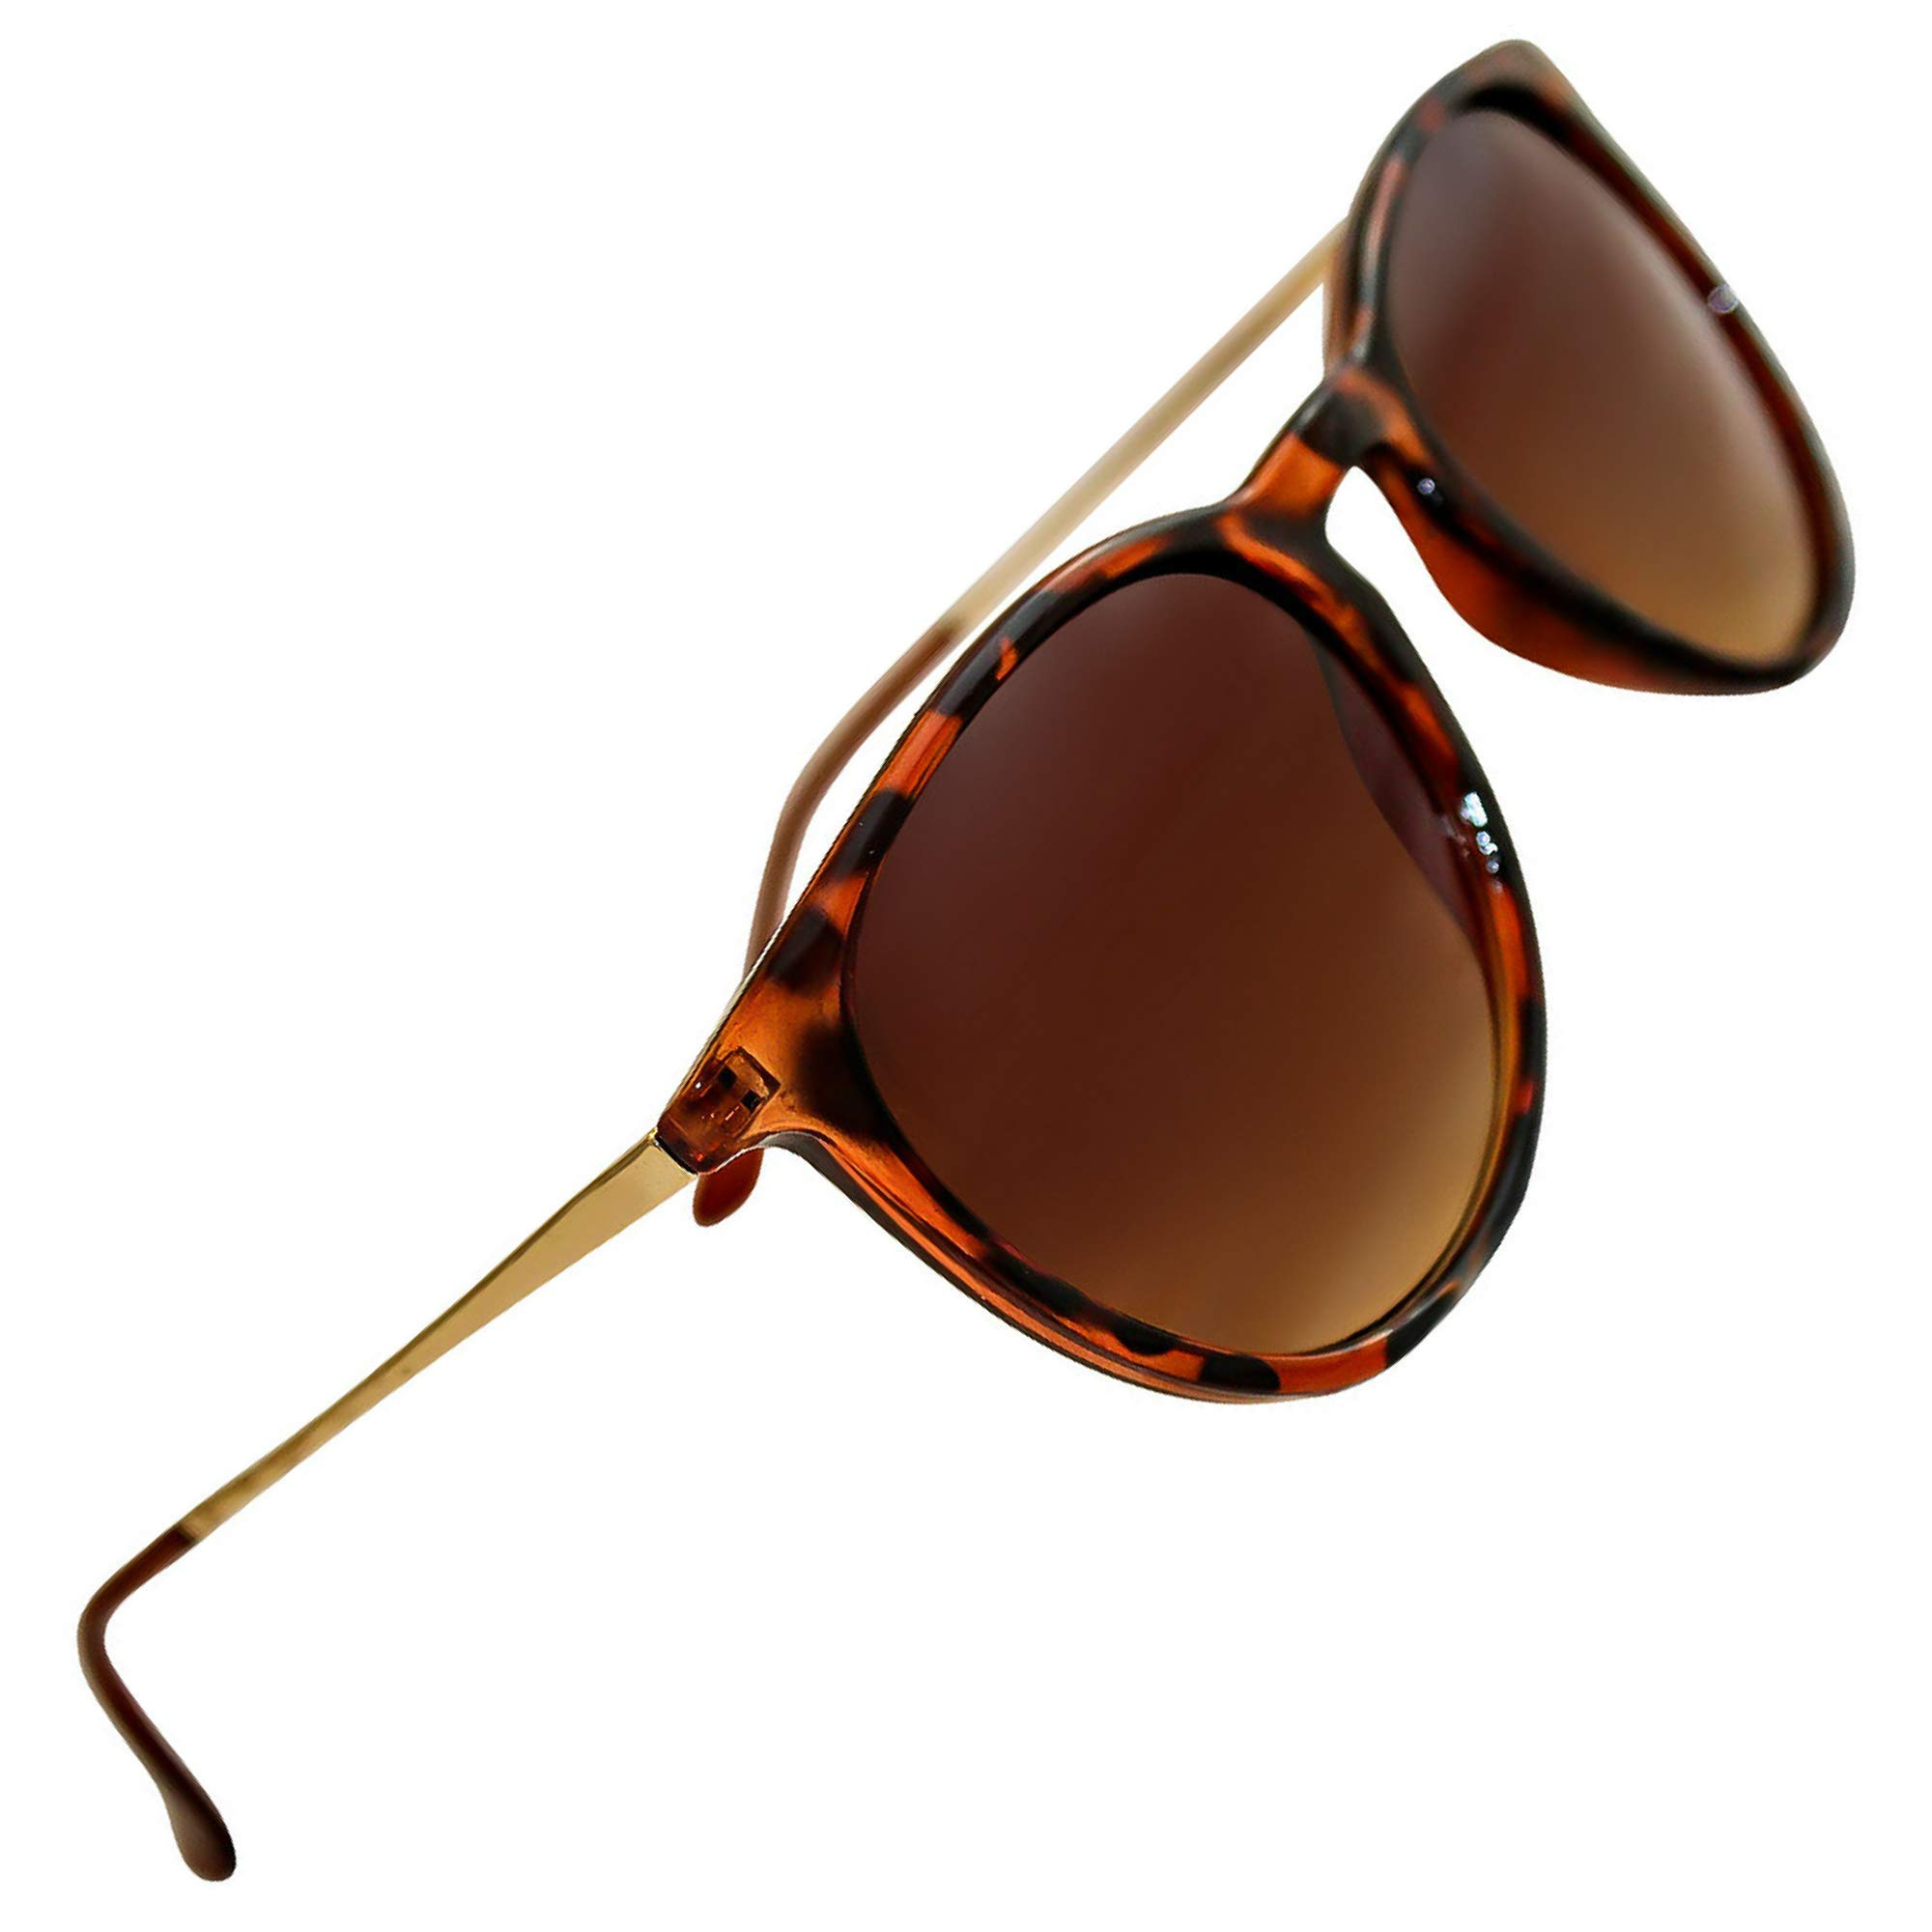 Women's Polarized Sunglasses from EYE LOVE, Designer, 100% UV Block + 5 BONUSES, Brown by Eye Love